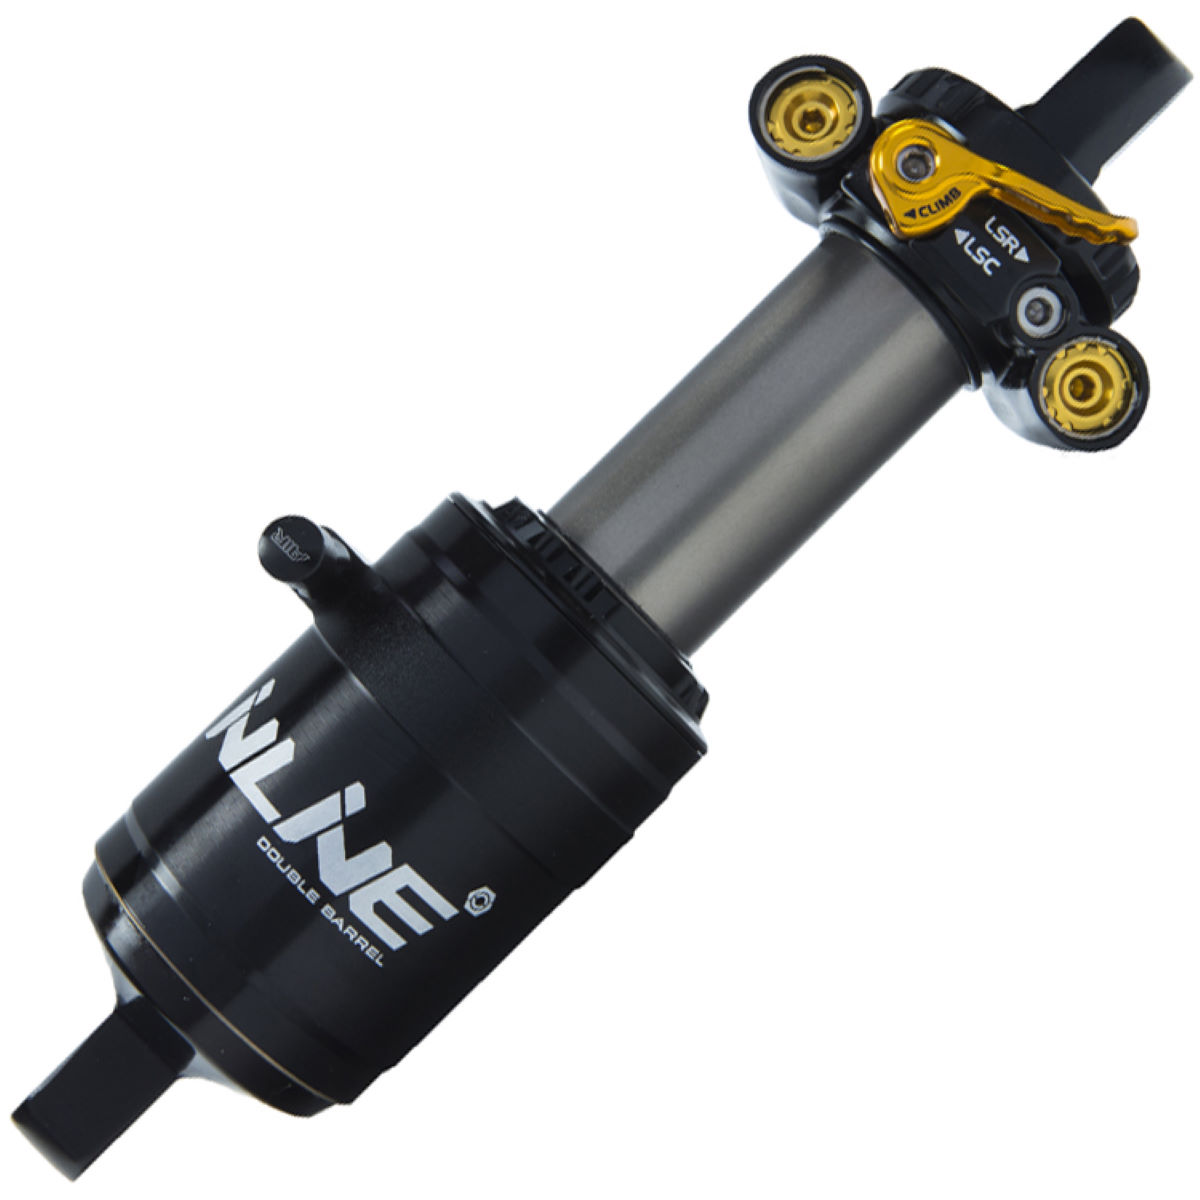 Cane Creek DBAir Inline Rear Shock - Amortiguadores traseros